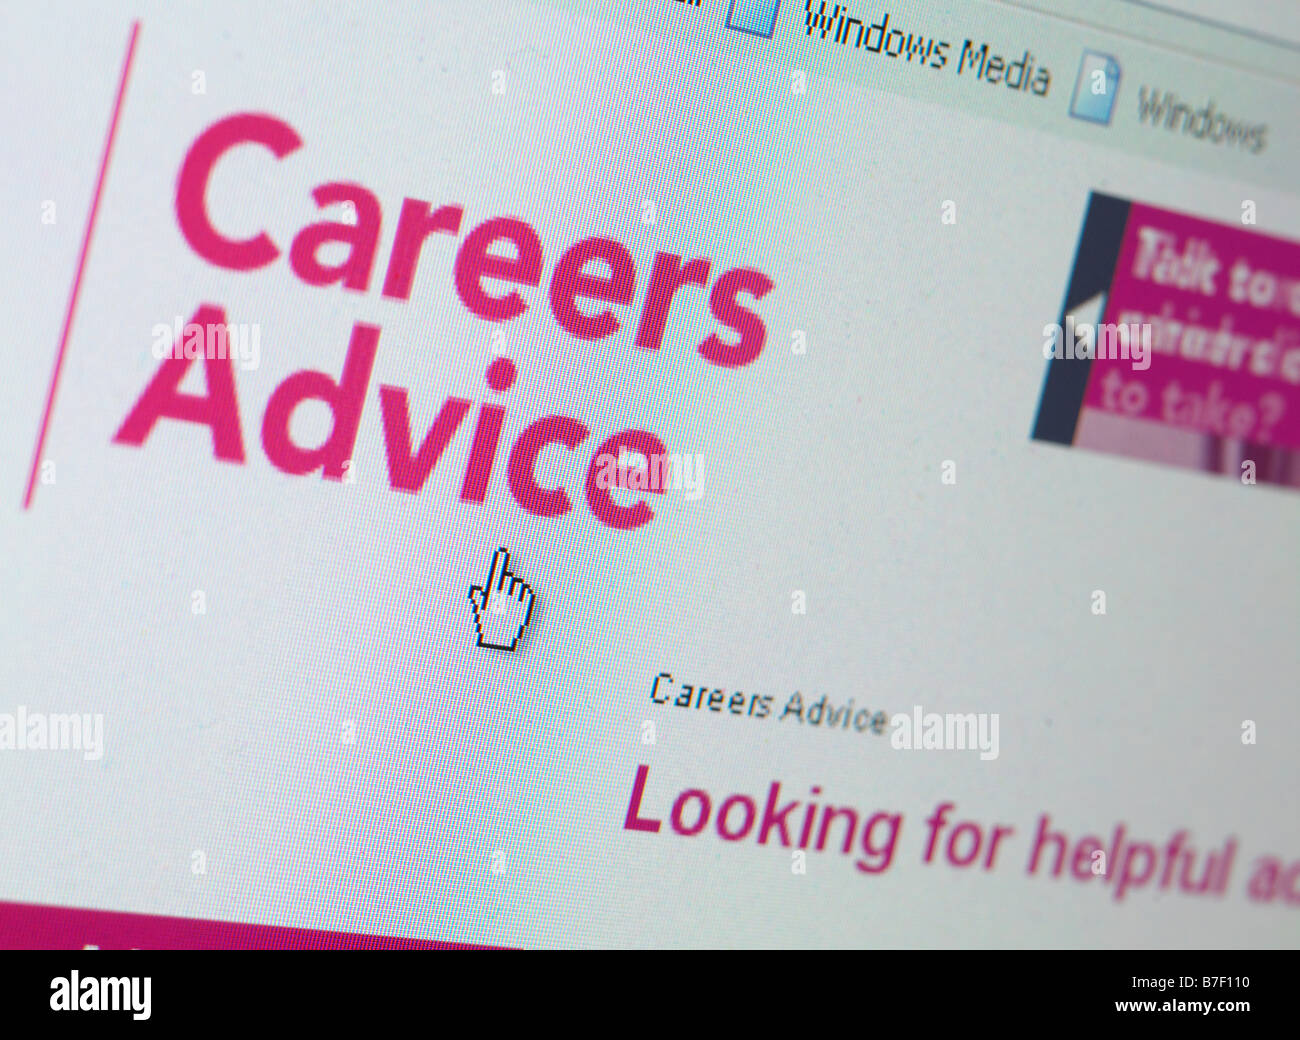 WEB SITE UK JOB CAREERS ADVICE HELP - Stock Image